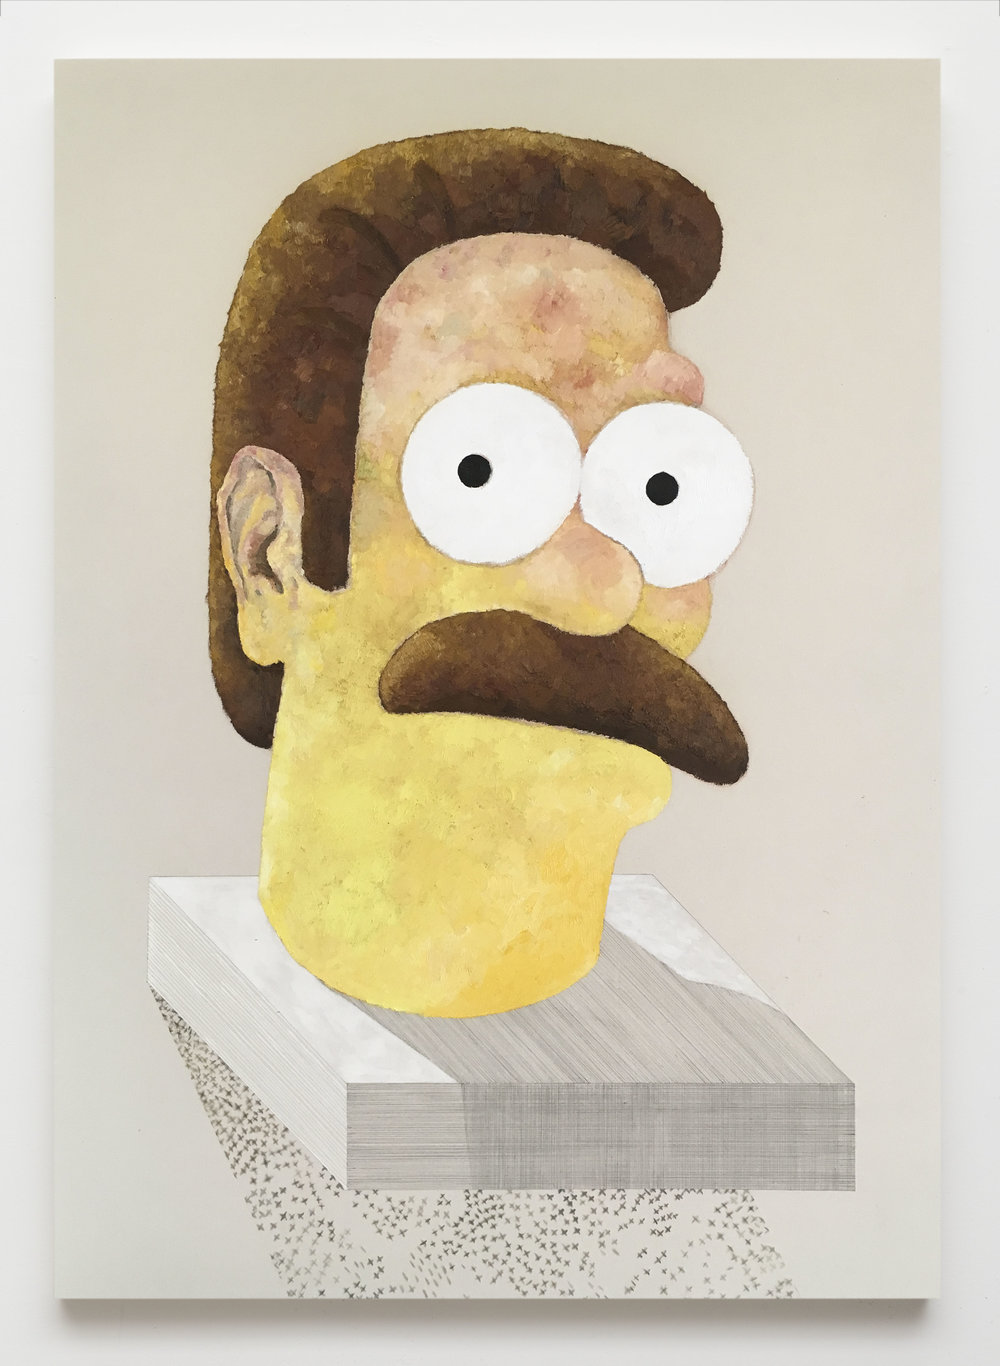 Ned Flanders,  2017  Oil on canvas  84 x 60 inches